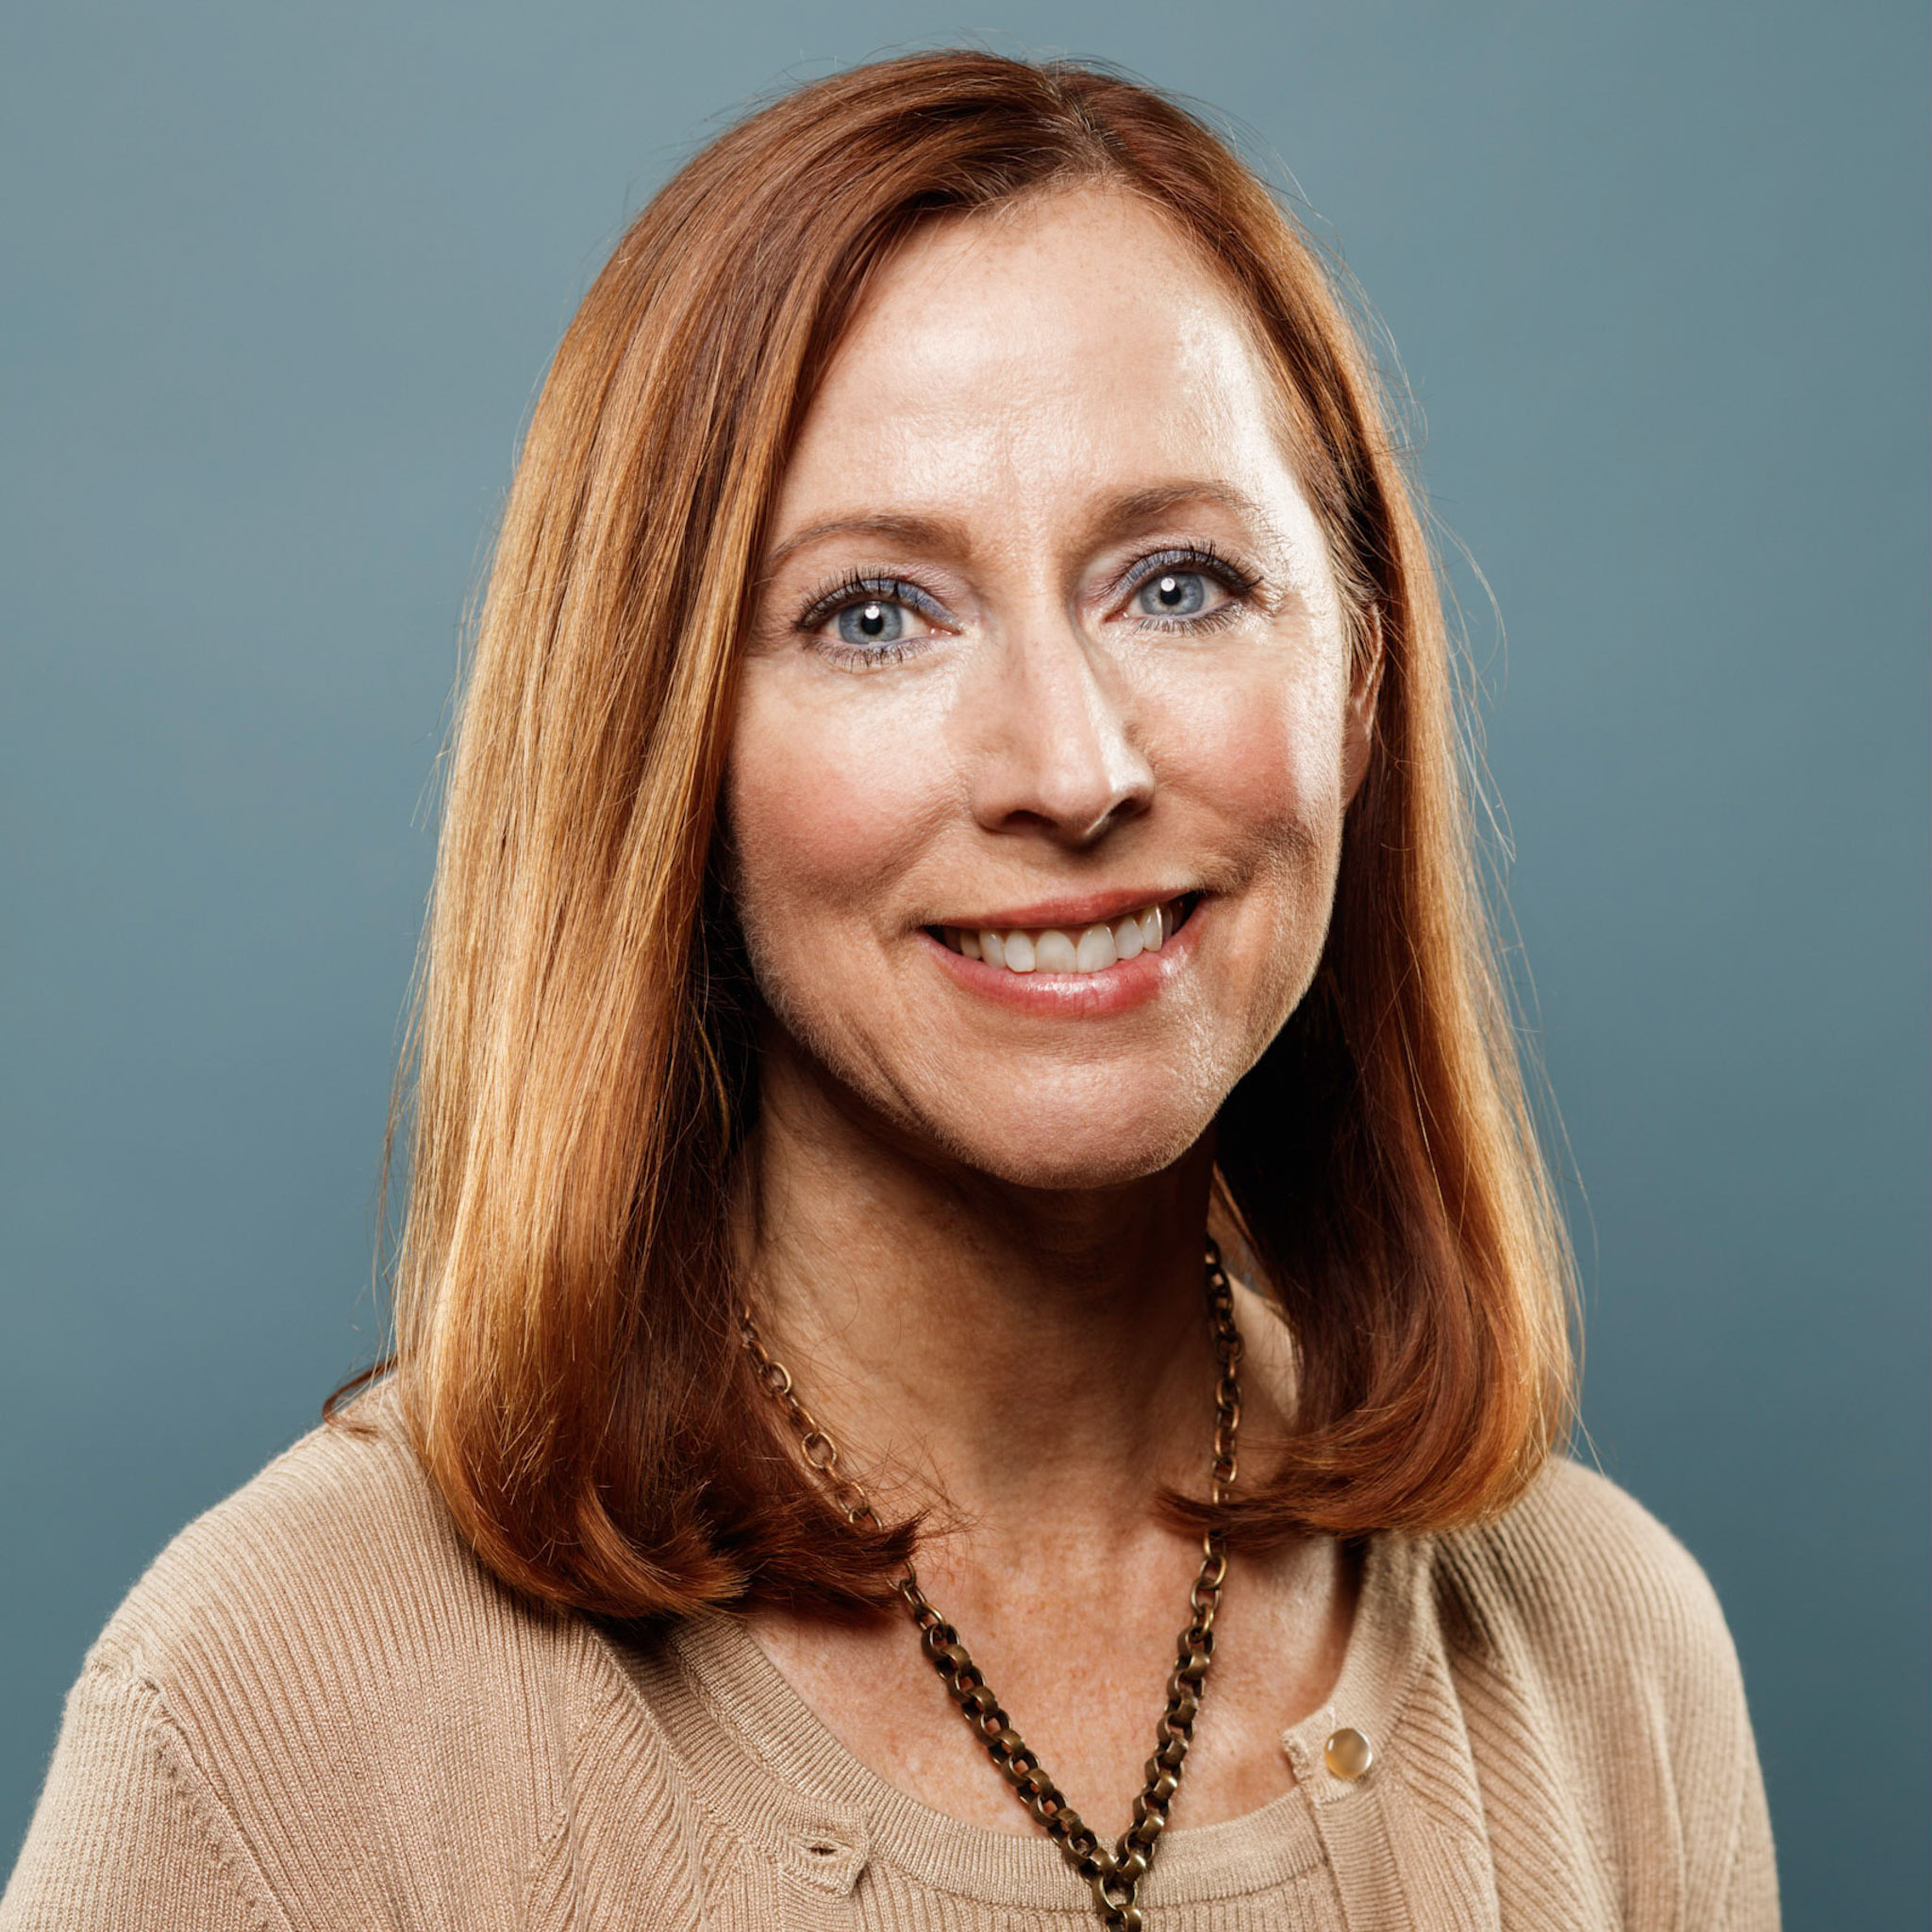 Lynn Atchison, CFO of Spredfast, Inc., was recently appointed to the Q2 board of directors. (Photo: Business Wire)